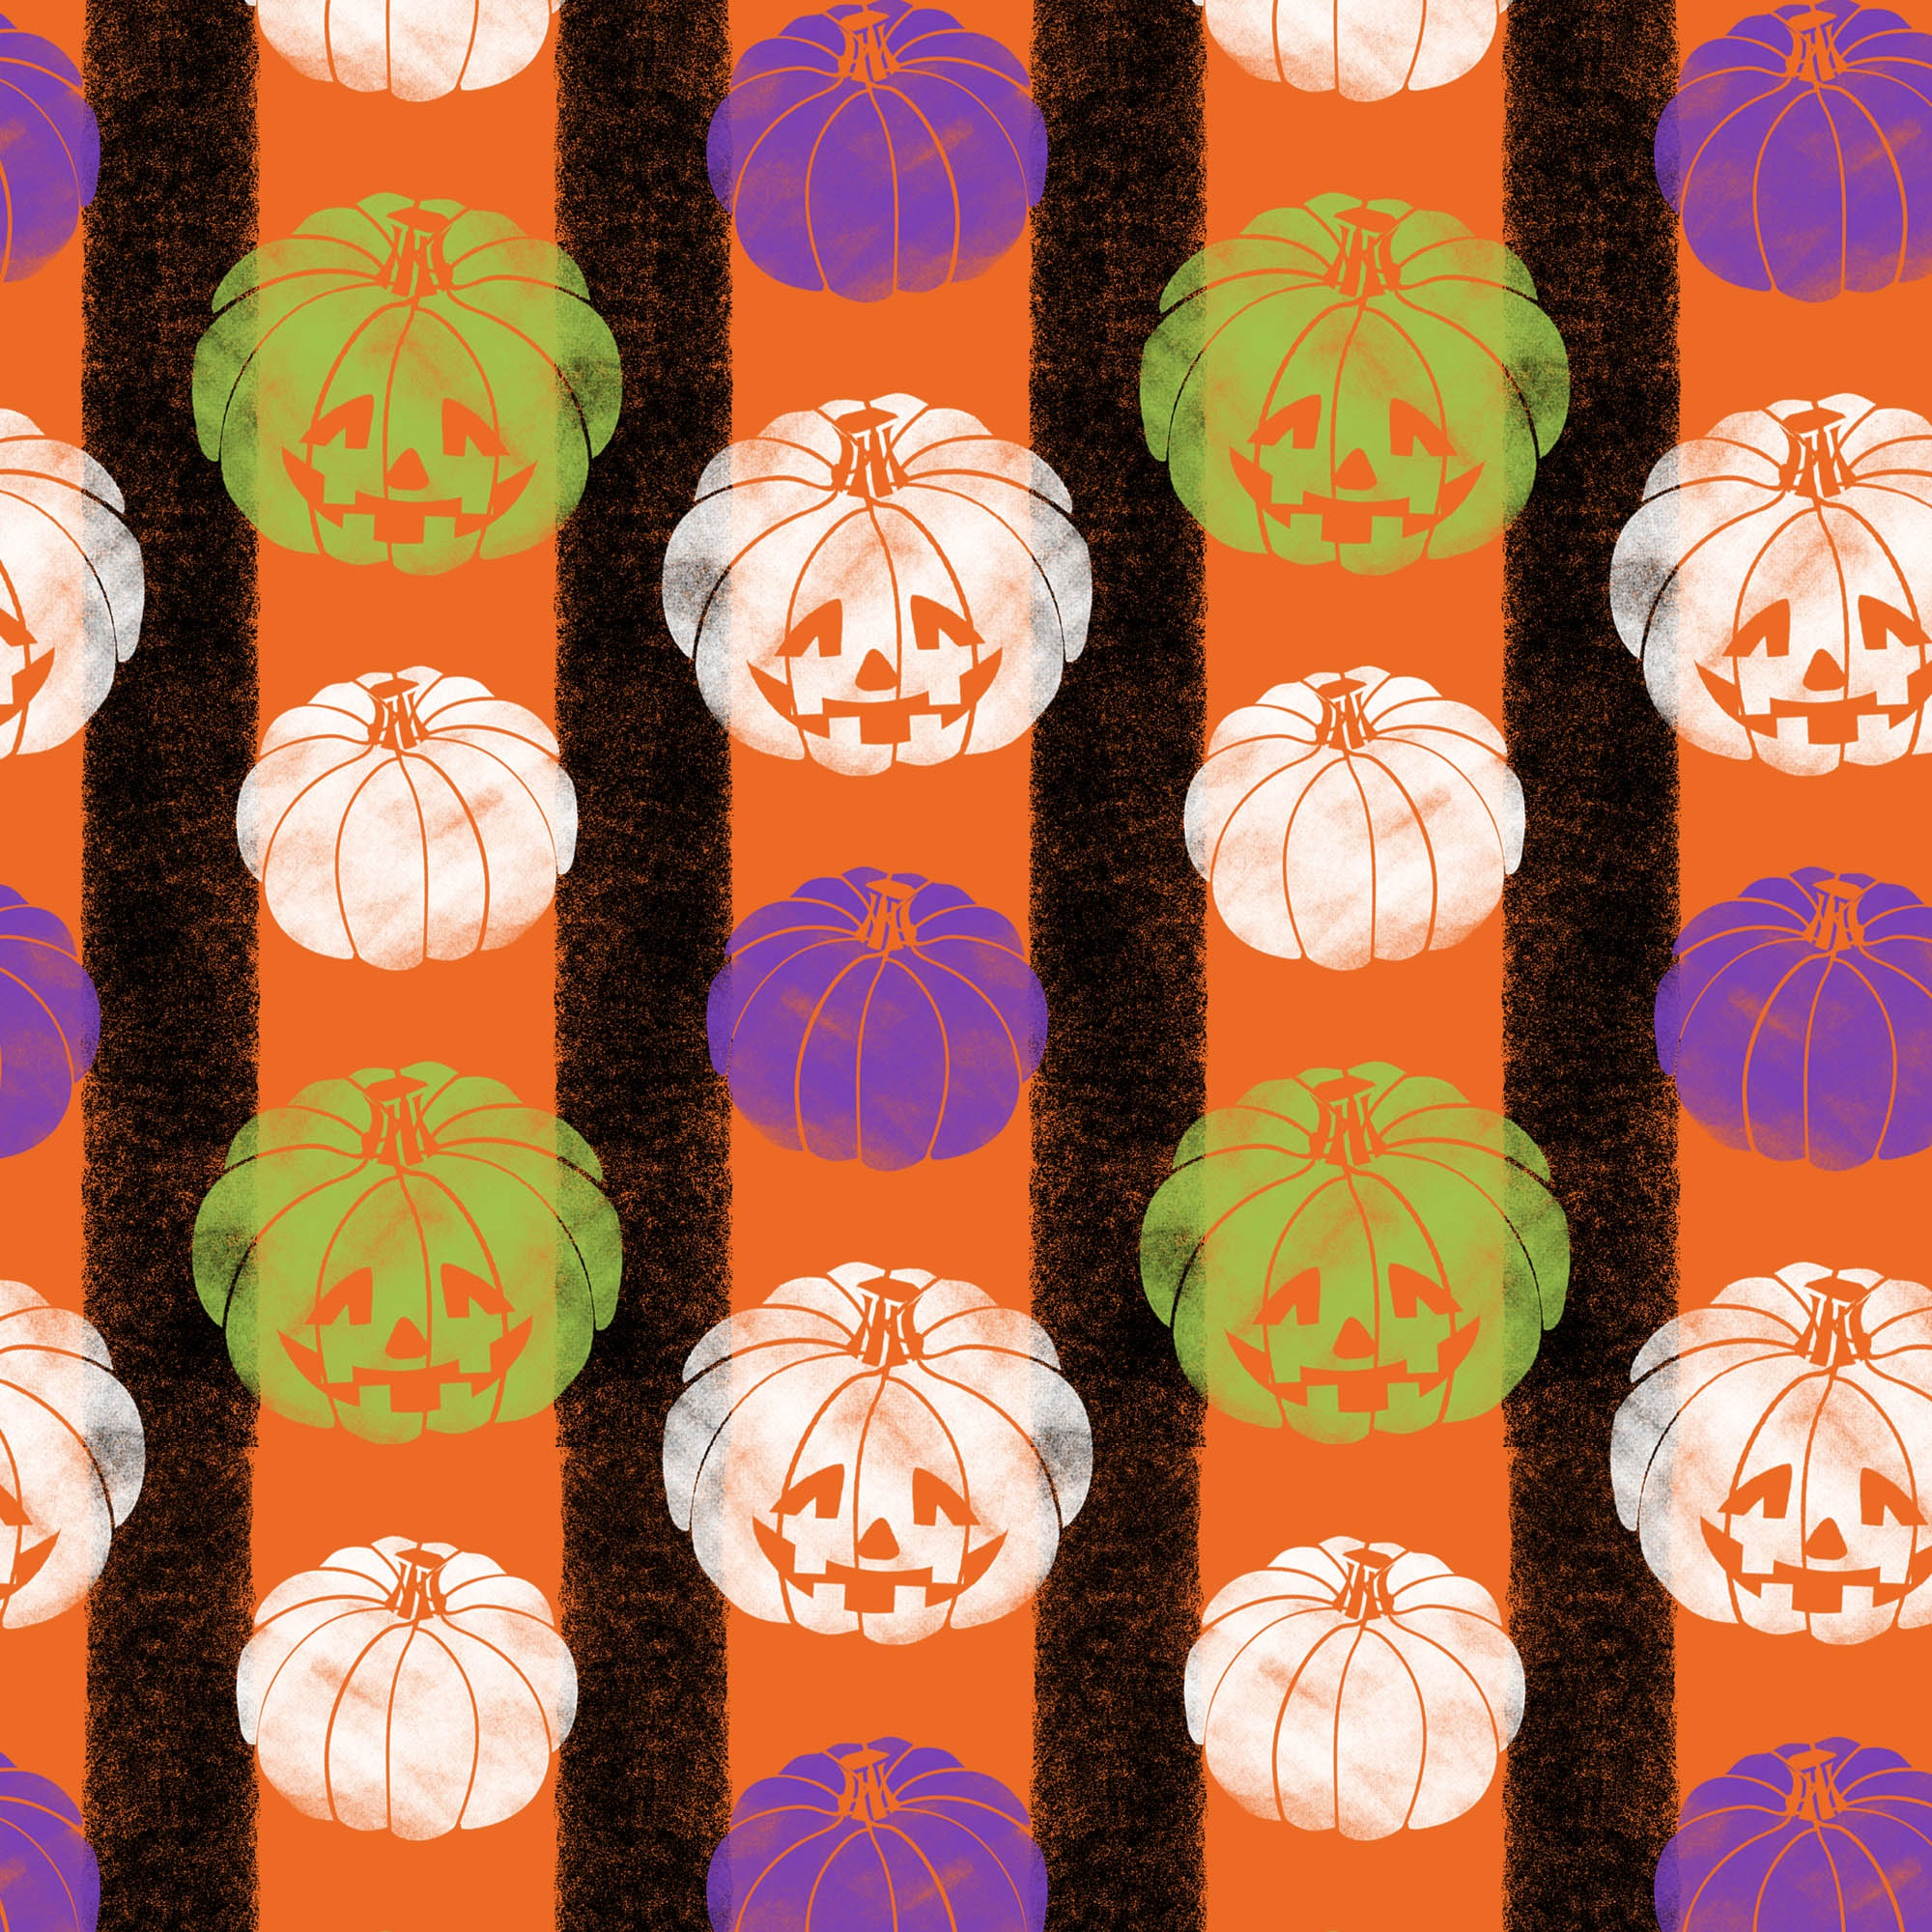 DAVID TEXTILES PUMPKIN STRIPE FABRIC BY THE YARD, 44 INCHES WIDE